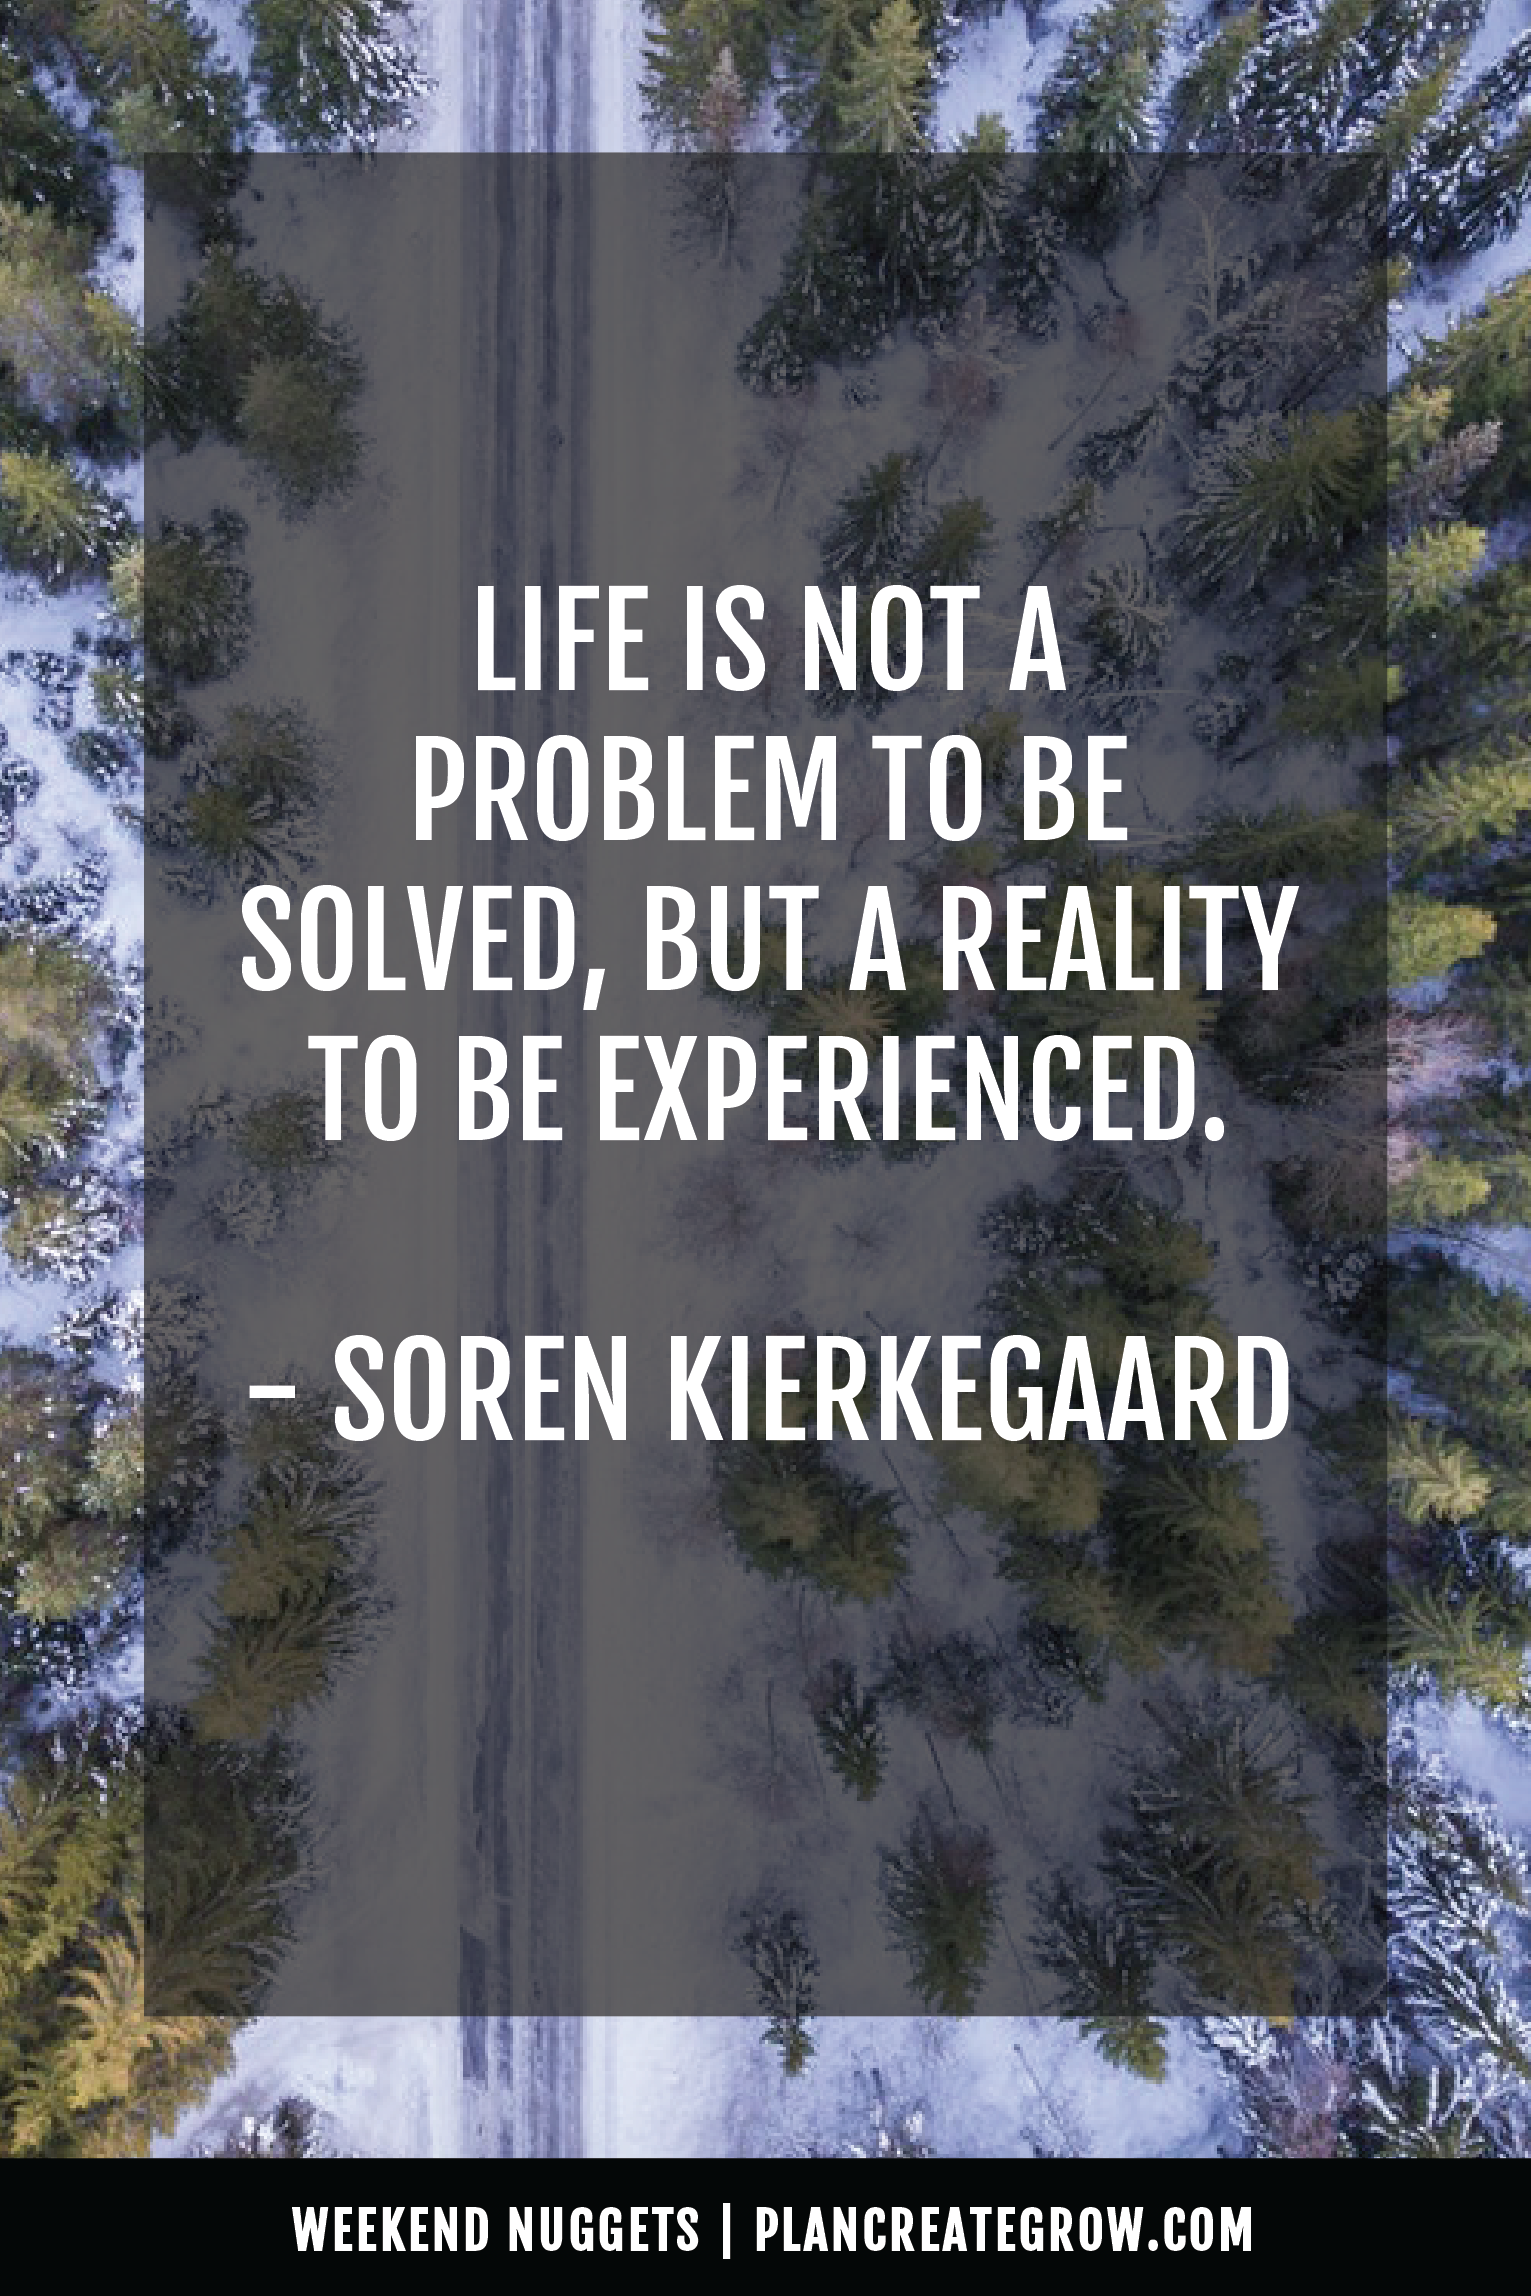 """""""Life is not a problem to be solved, but a reality to be experienced."""" Soren Kierkegaard  This image forms part of a series called Weekend Nuggets - a collection of quotes and ideas curated to delight and inspire - shared each weekend. For more, visit plancreategrow.com/weekend-nuggets."""